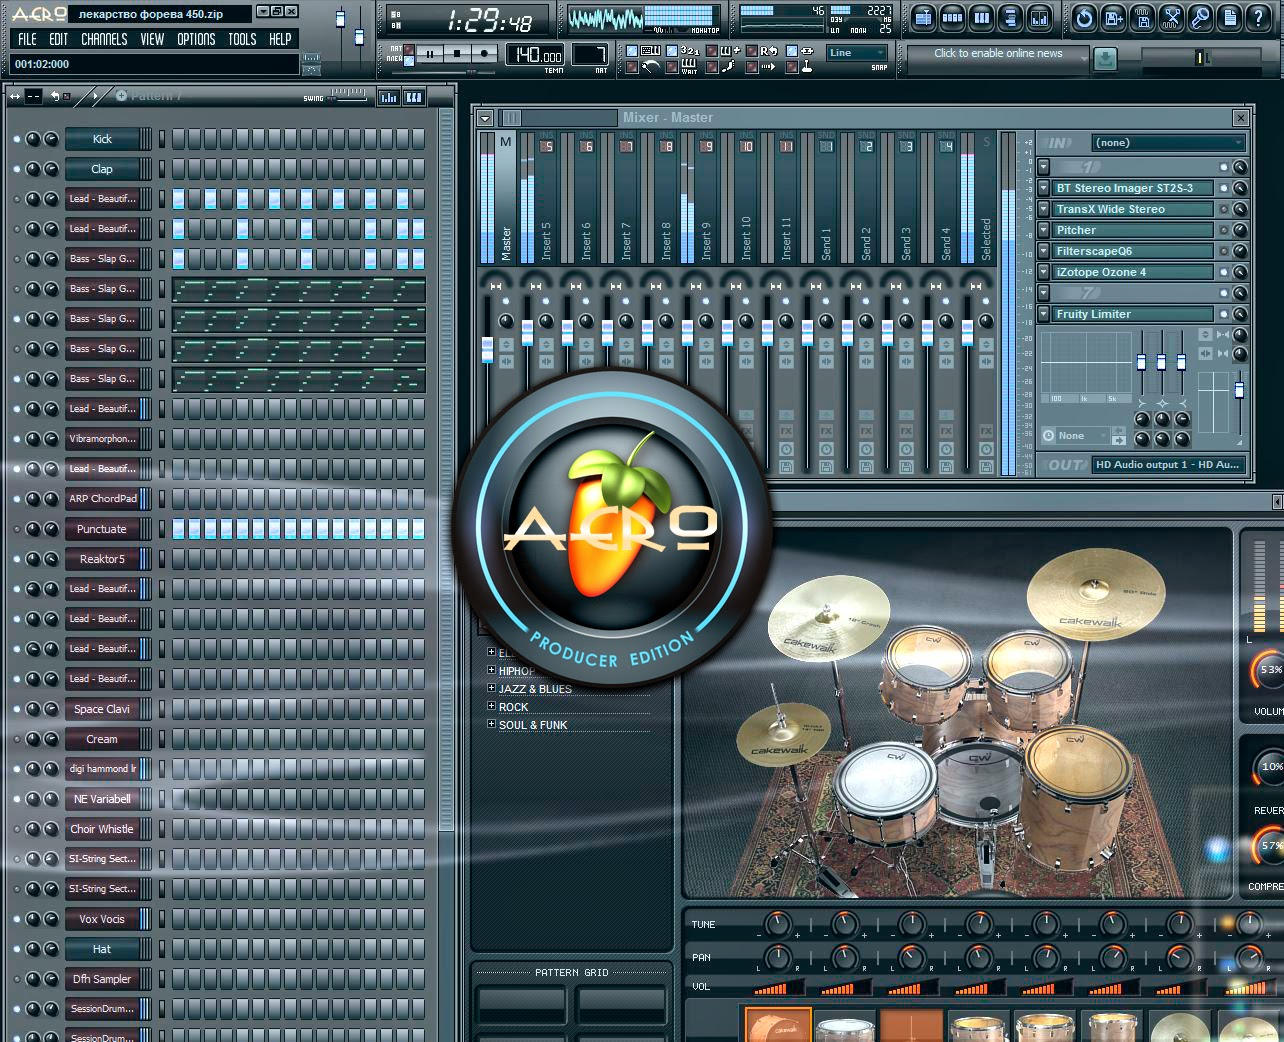 Download FL Studio 12 Full installer / Unlimited free trial